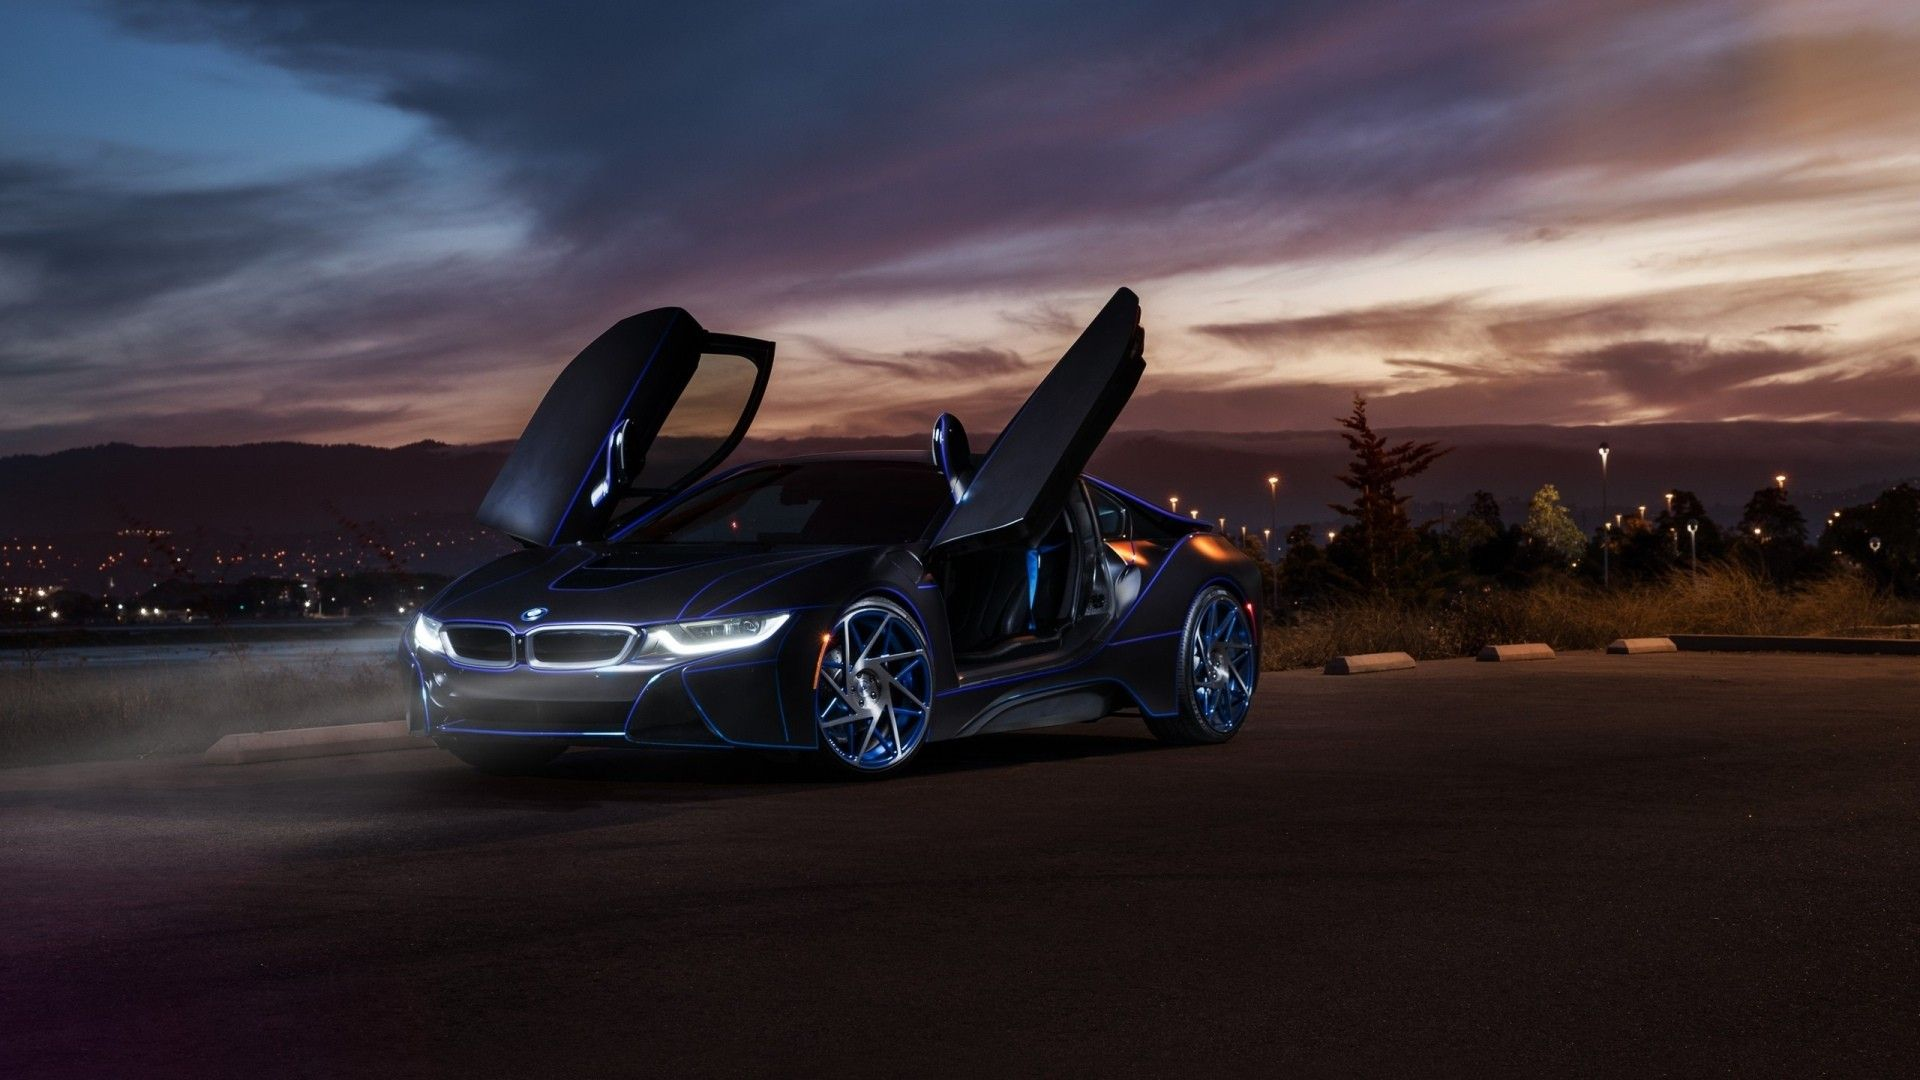 Bmw I8 Hybrid Supercar Wallpapers For Desktop 1920x1080 Wallpaper